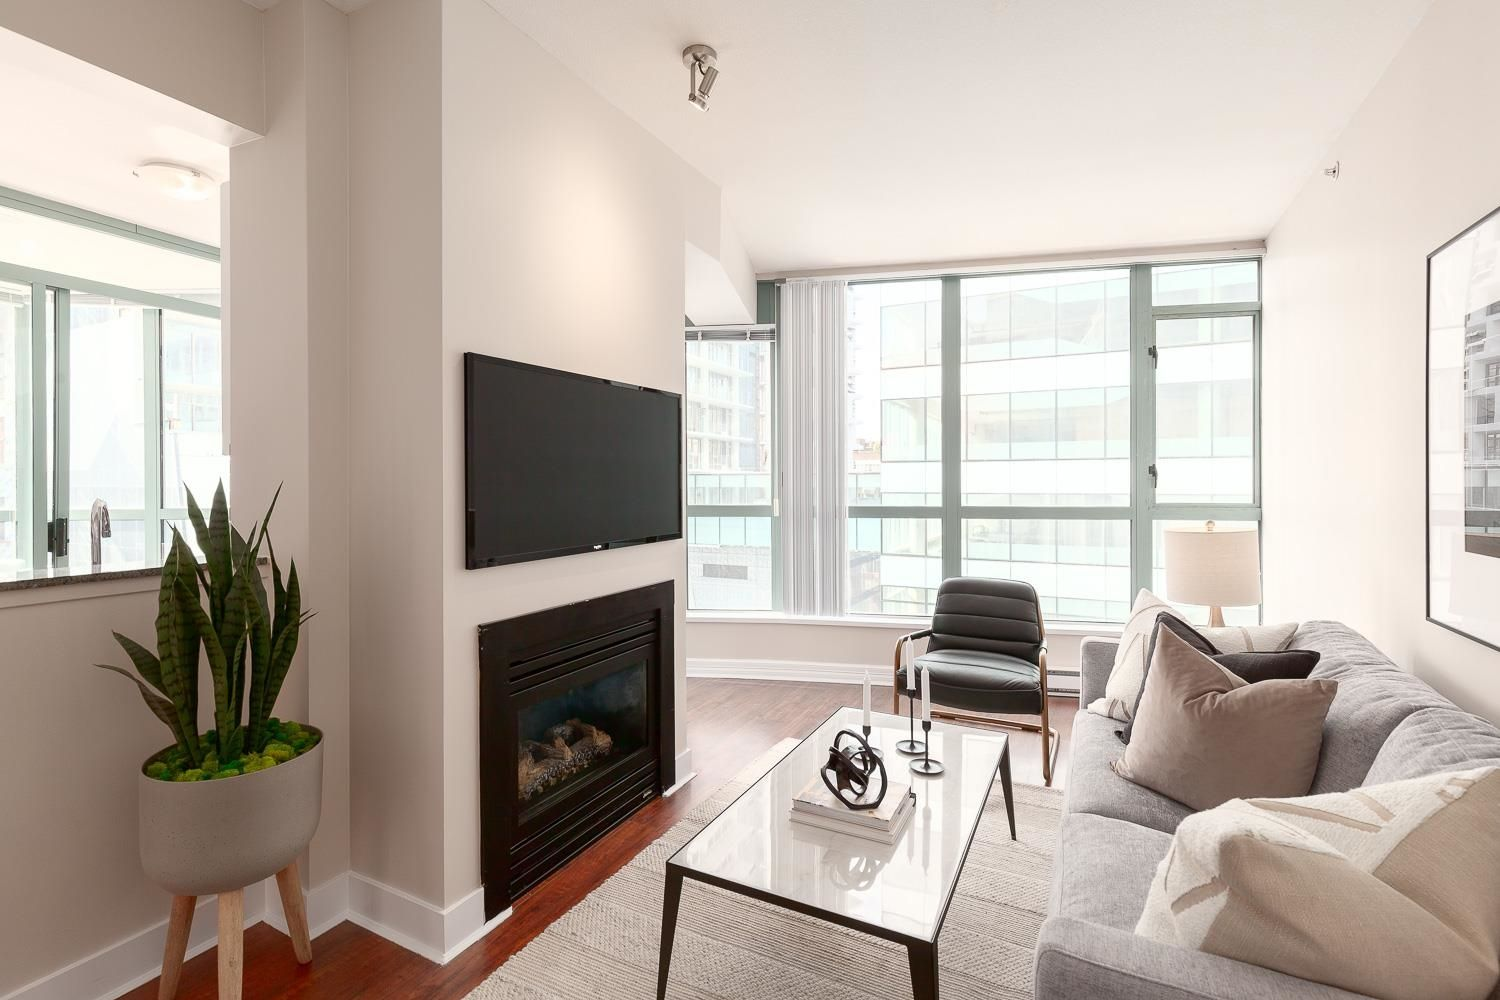 Main Photo: 602 1238 BURRARD STREET in Vancouver: Downtown VW Condo for sale (Vancouver West)  : MLS®# R2612508